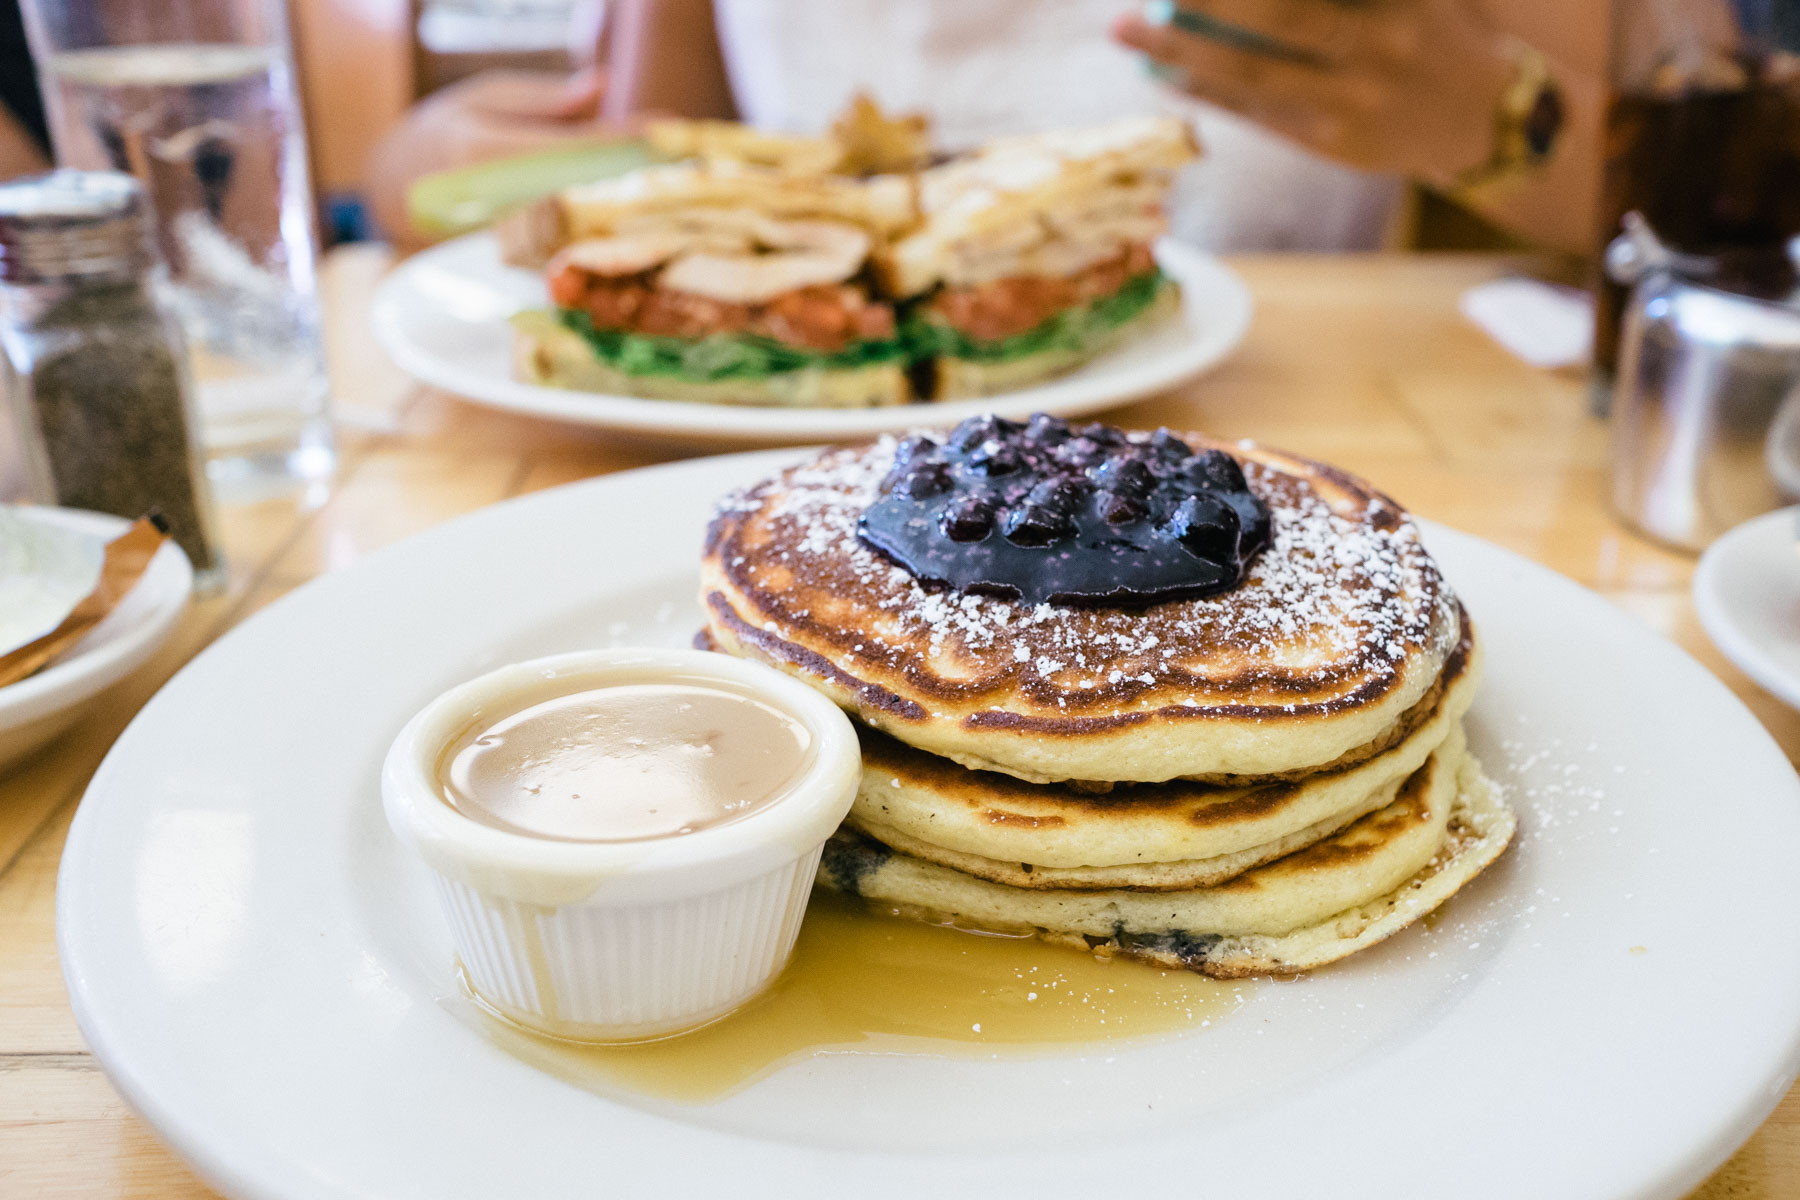 Best Pancakes Nyc  Clinton St Baking pany Review Best Pancakes in New